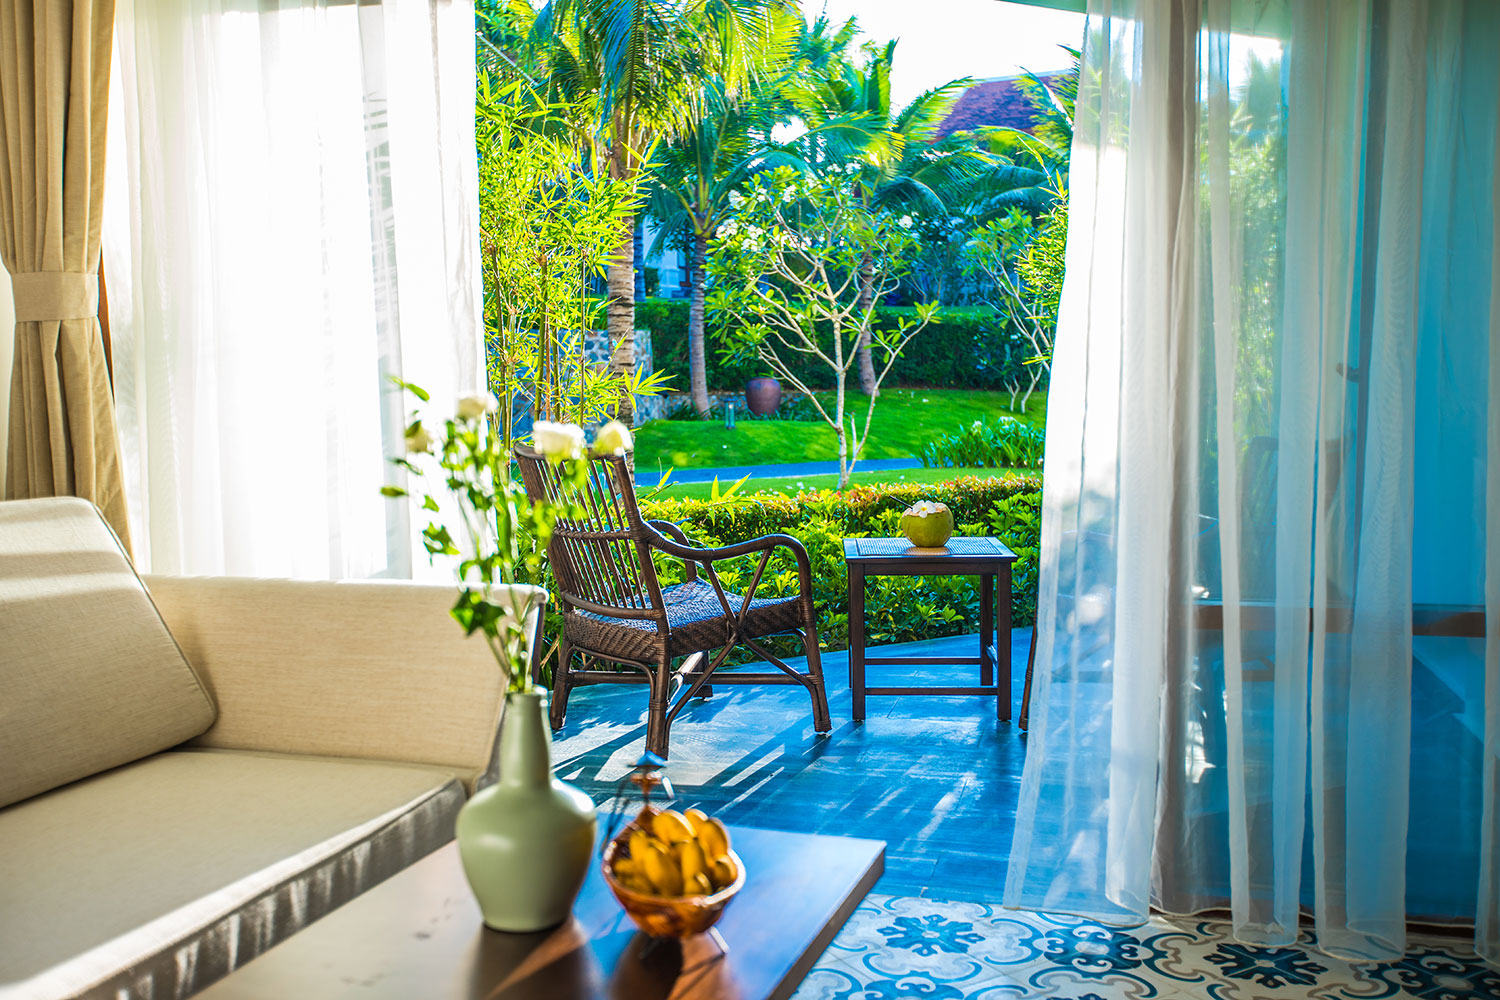 Balcony Garden View Room - With views of lush tropical gardens, our Balcony Garden View Rooms combine The Anam's signature architectural style of the Indochine era with modern luxury.